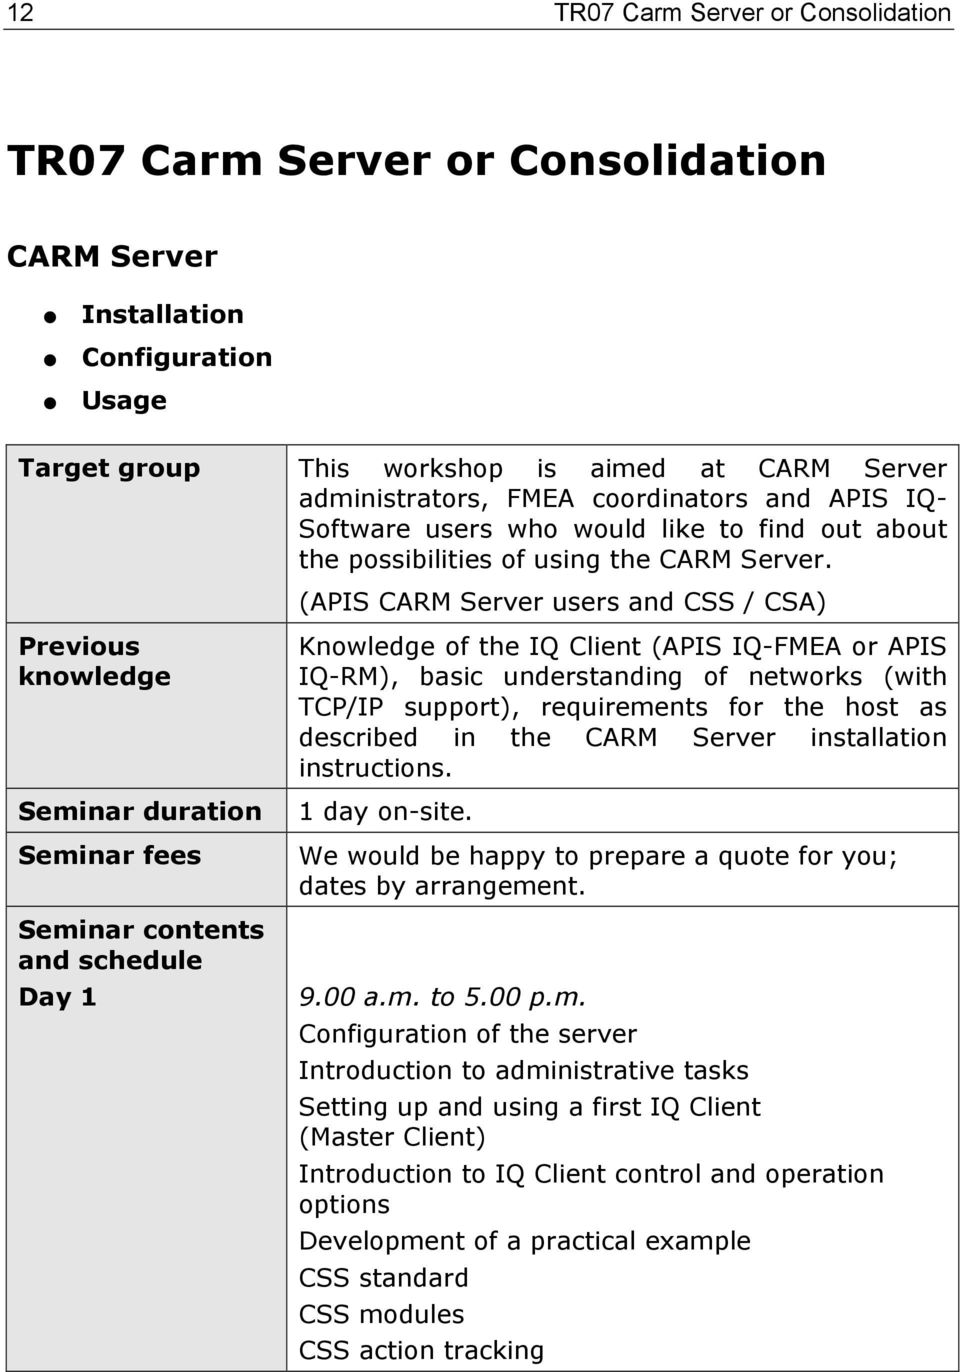 (APIS CARM Server users and CSS / CSA) Previous knowedge Seminar duration Seminar fees Seminar contents and schedue Day 1 Knowedge of the IQ Cient (APIS IQ-FMEA or APIS IQ-RM), basic understanding of